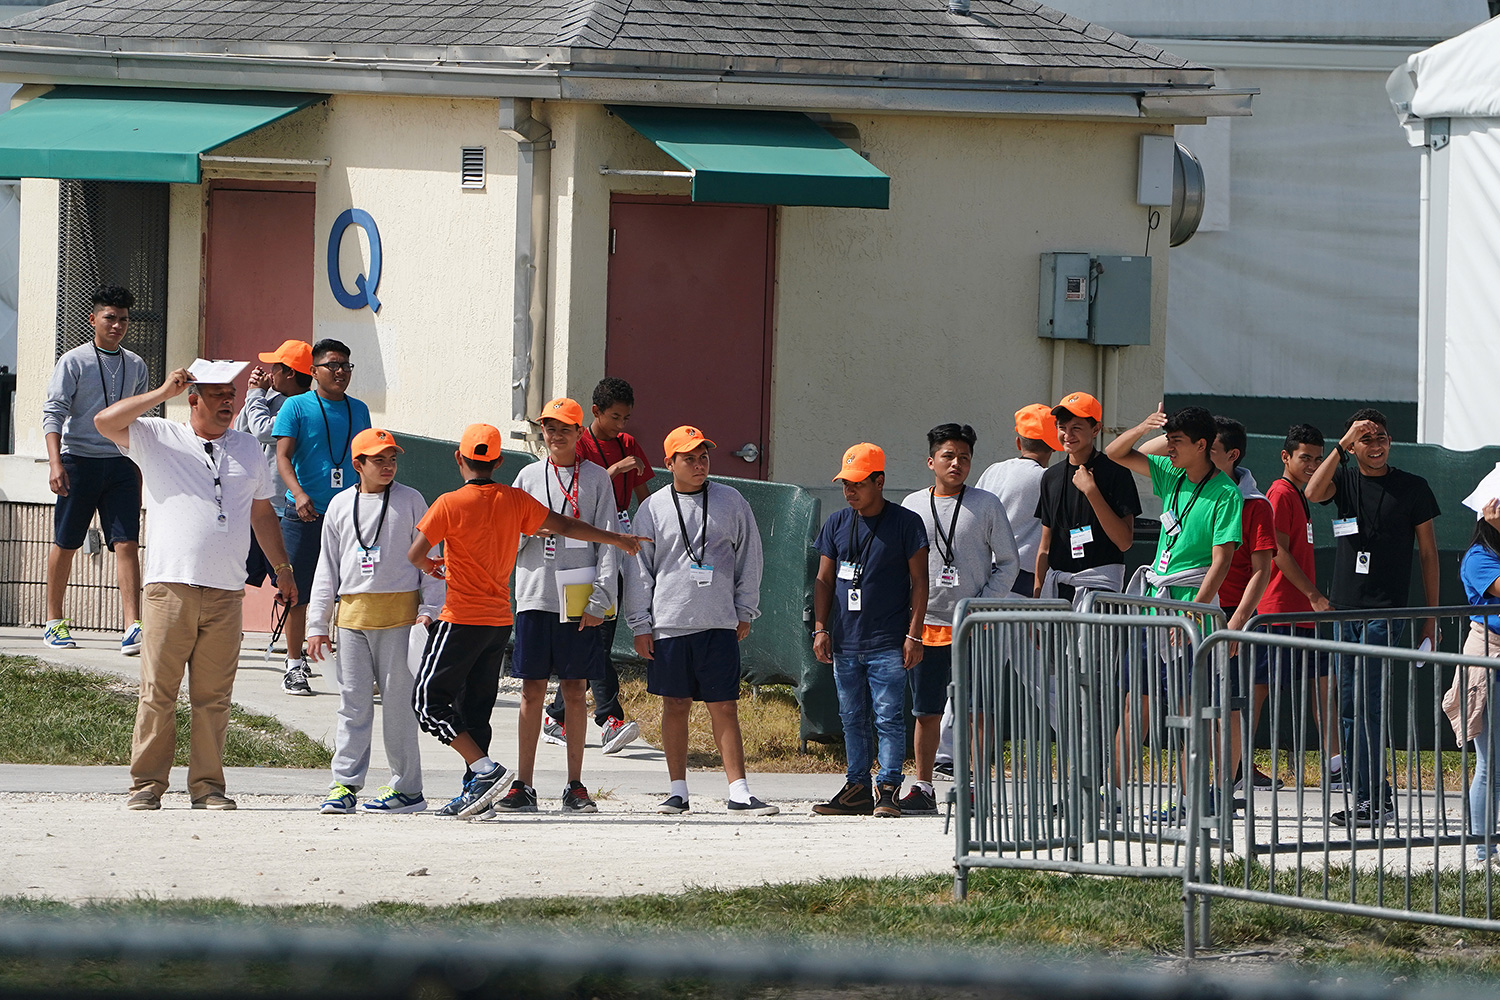 The photo shows a group of children, all with orange hats, standing in a line.